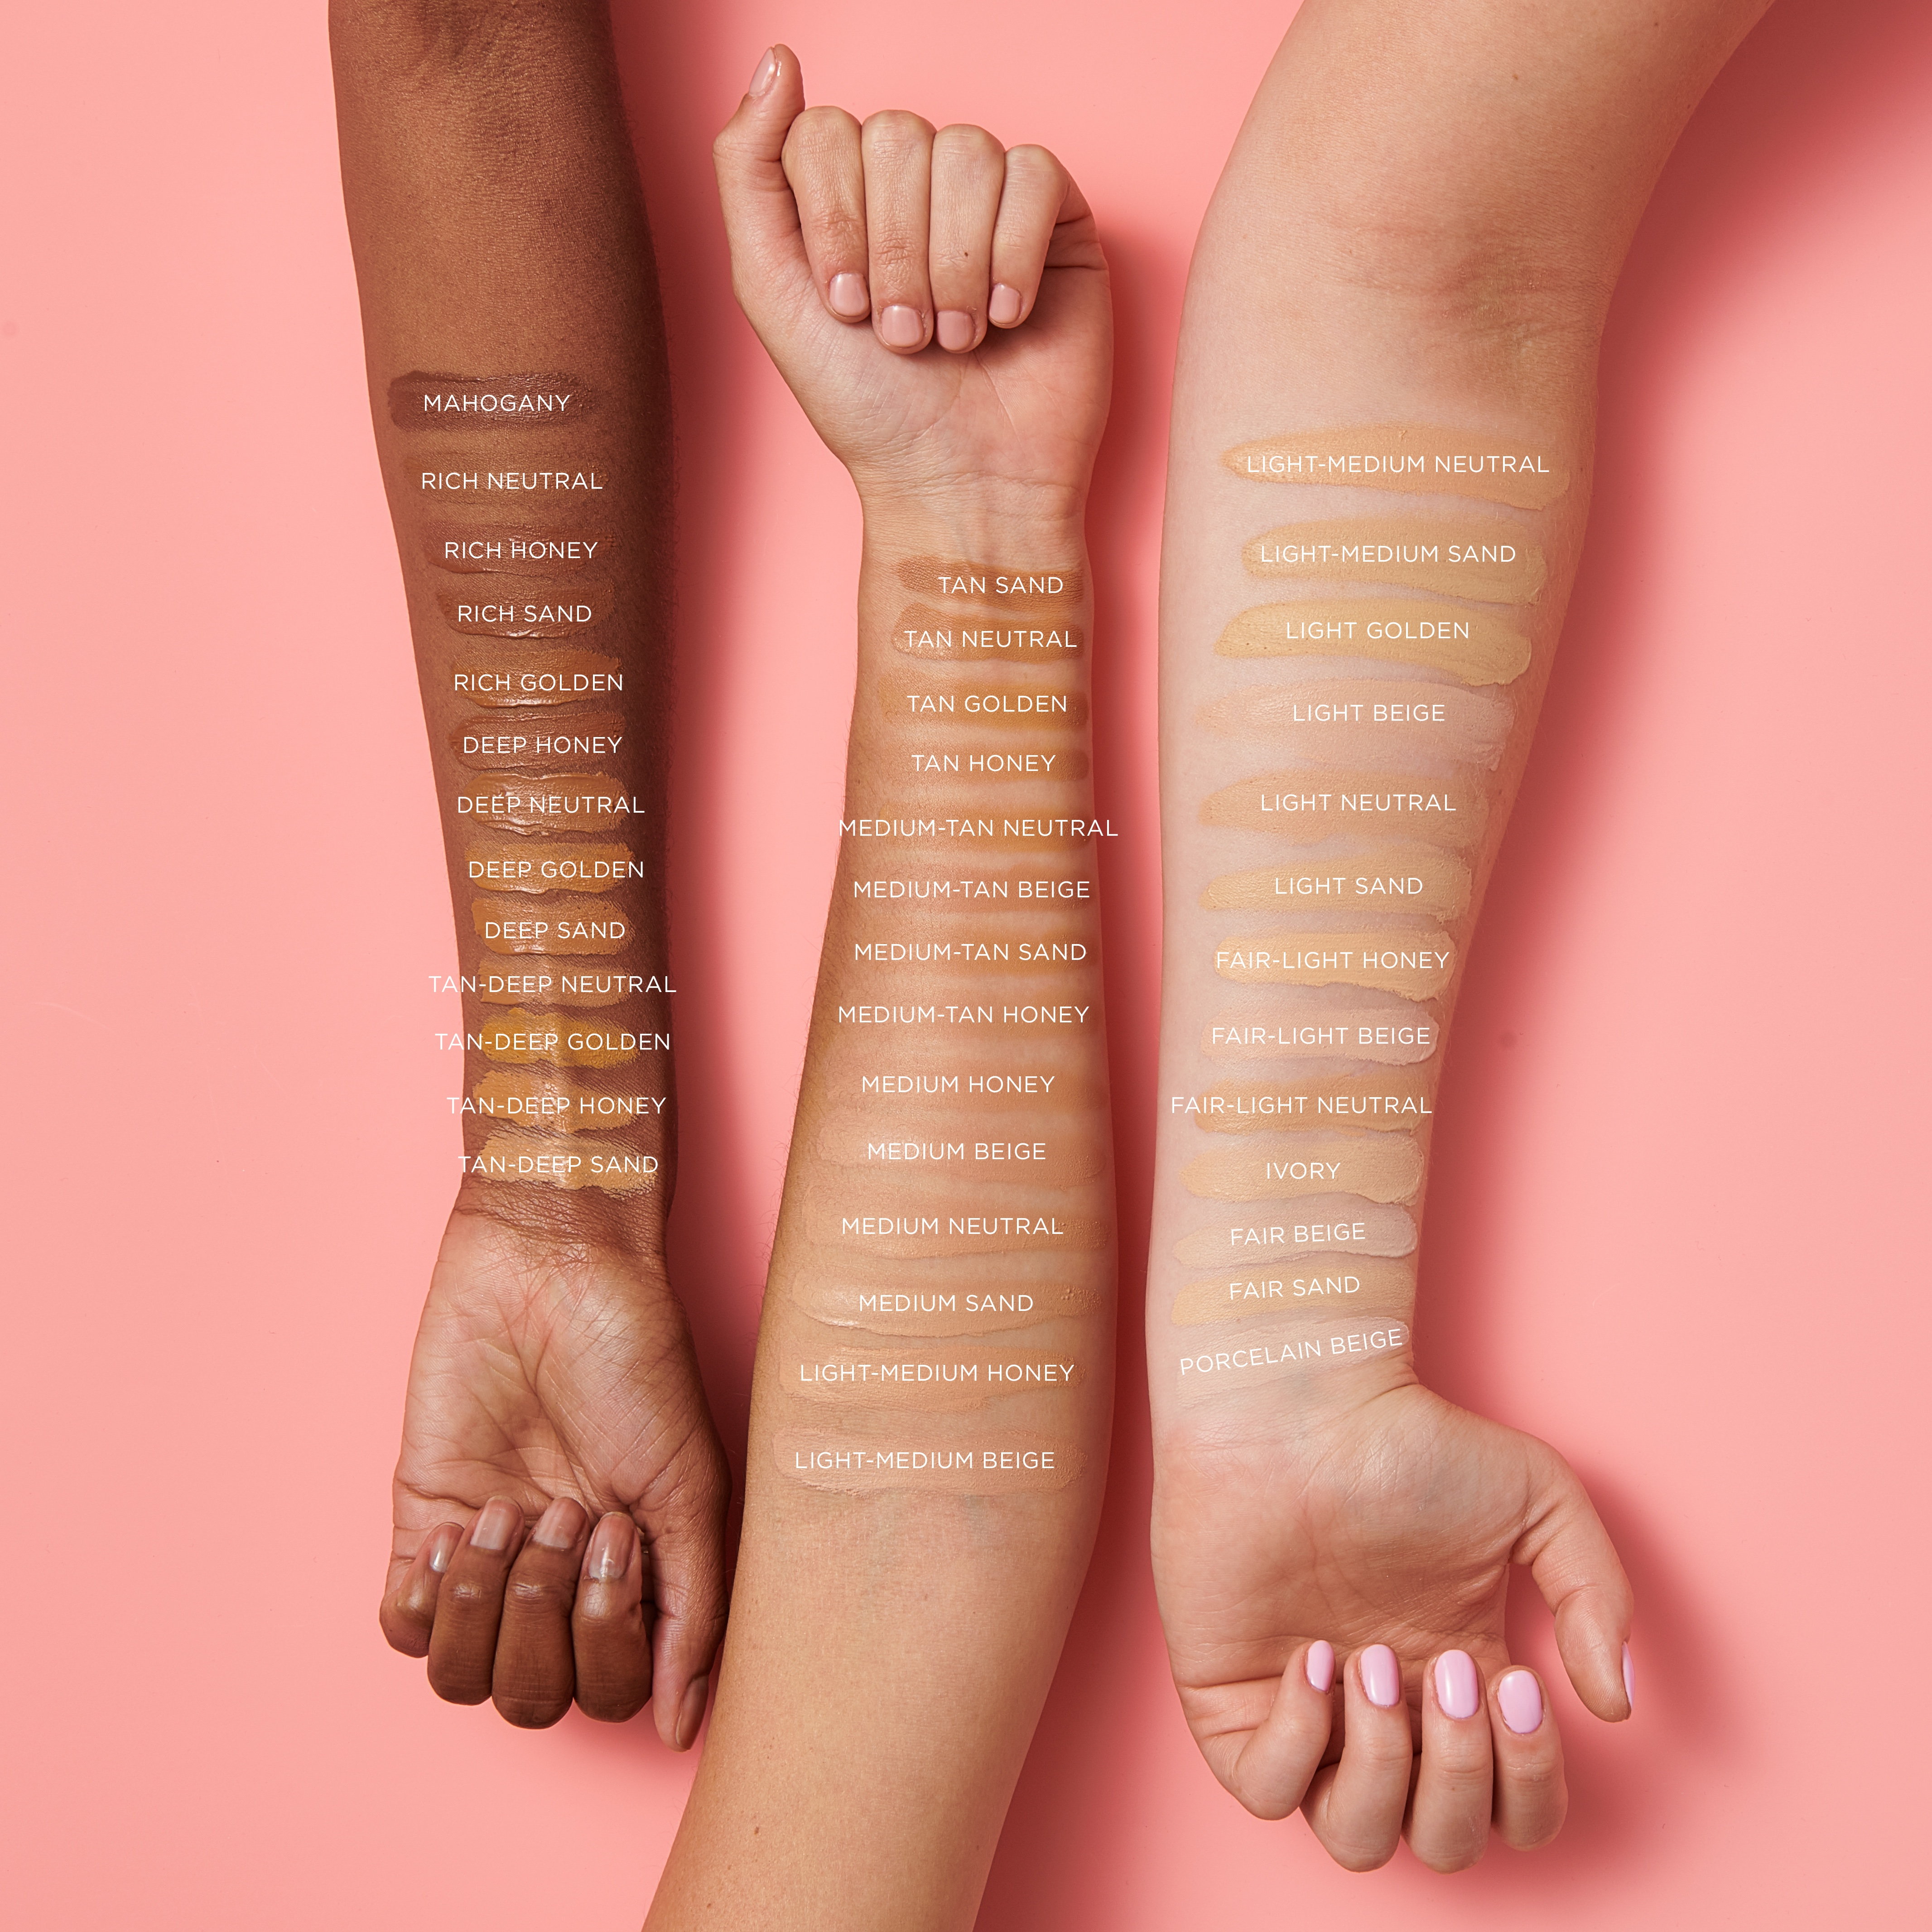 Amazonian Clay Full Coverage Airbrush Foundation by Tarte #10